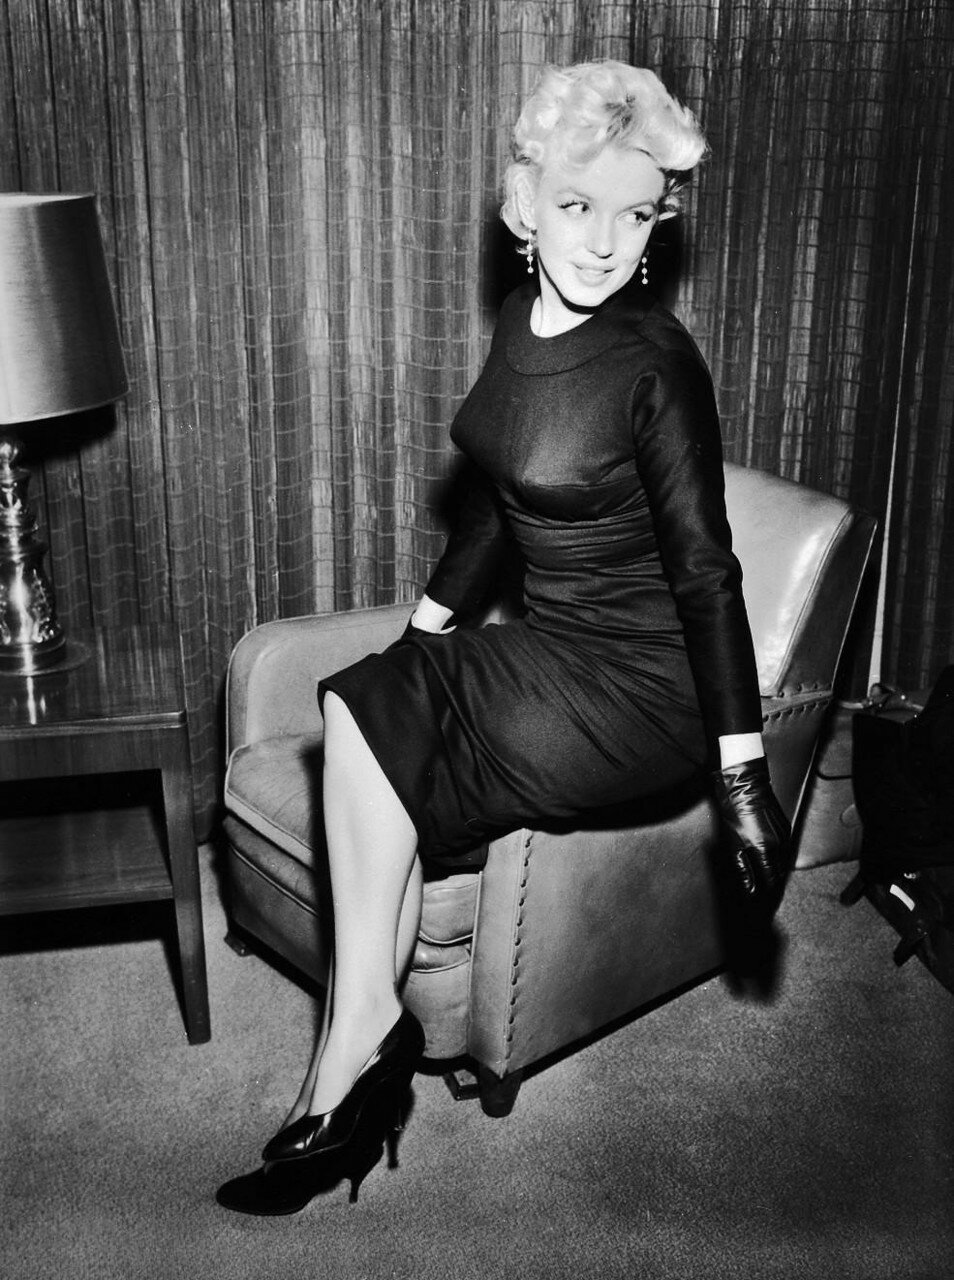 Marilyn Monroe Sitting on Chair